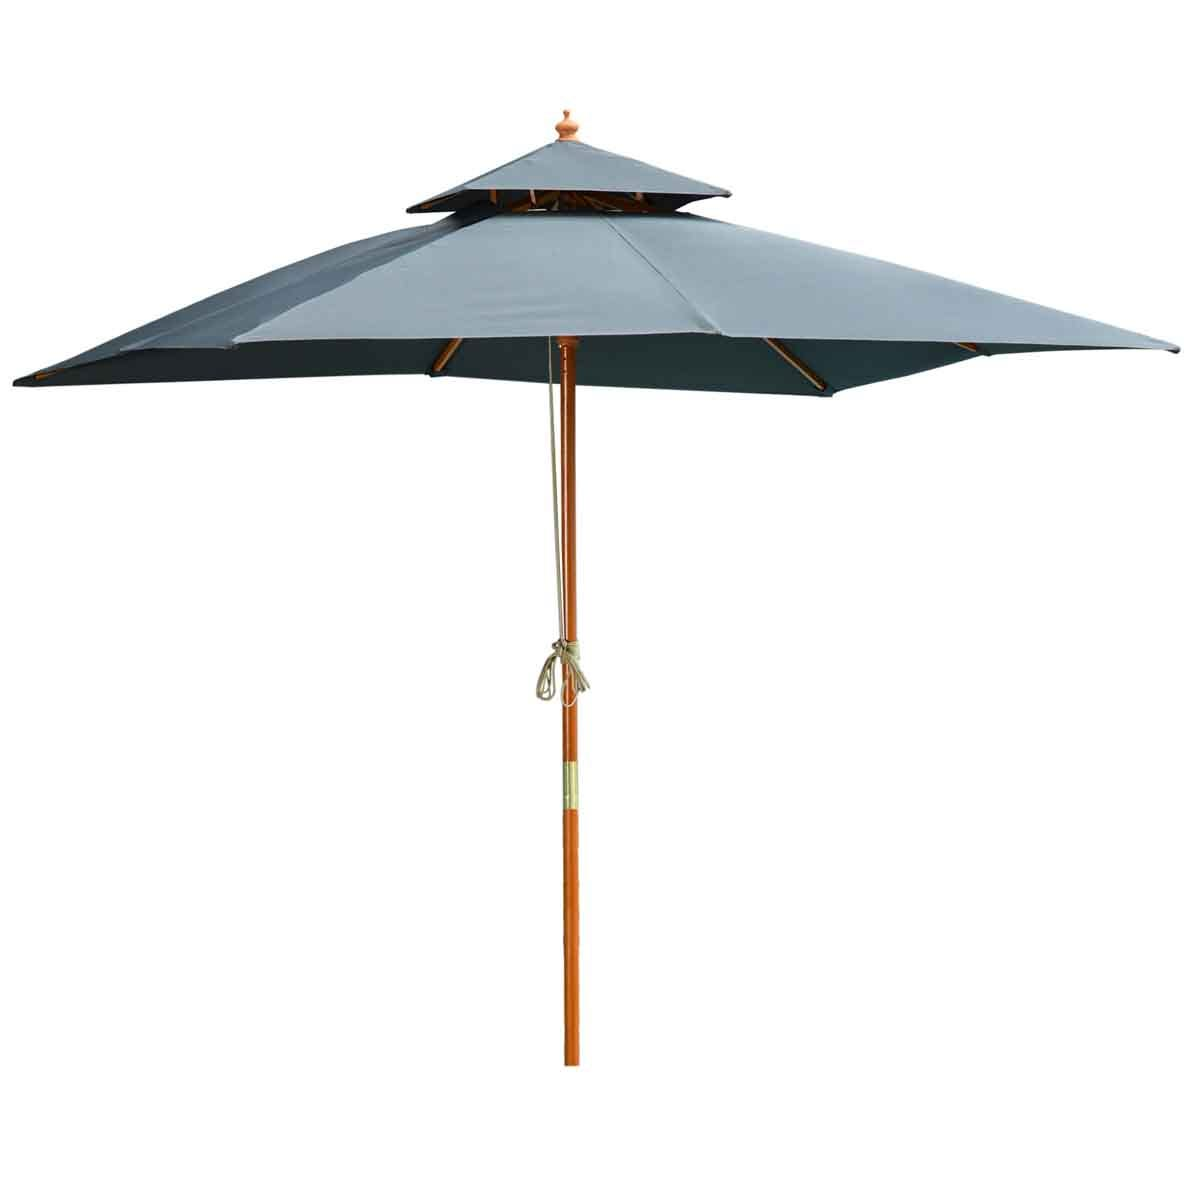 Outsunny 3m Wooden Square Parasol (base not included) - Grey